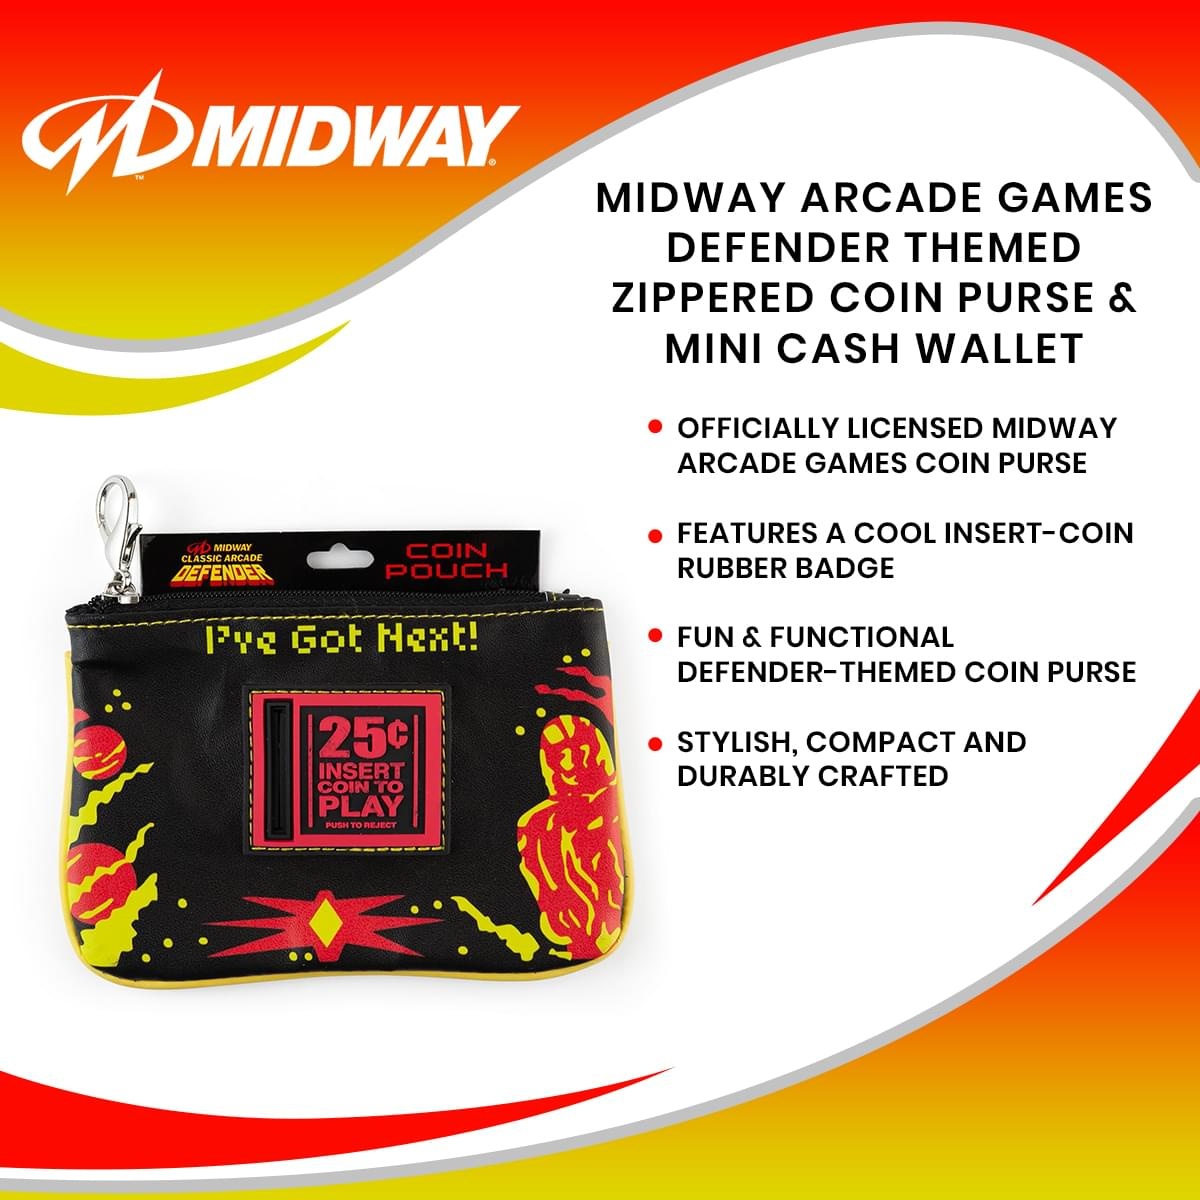 Midway Arcade Games Defender Themed Zippered Coin Purse & Mini Cash Wallet